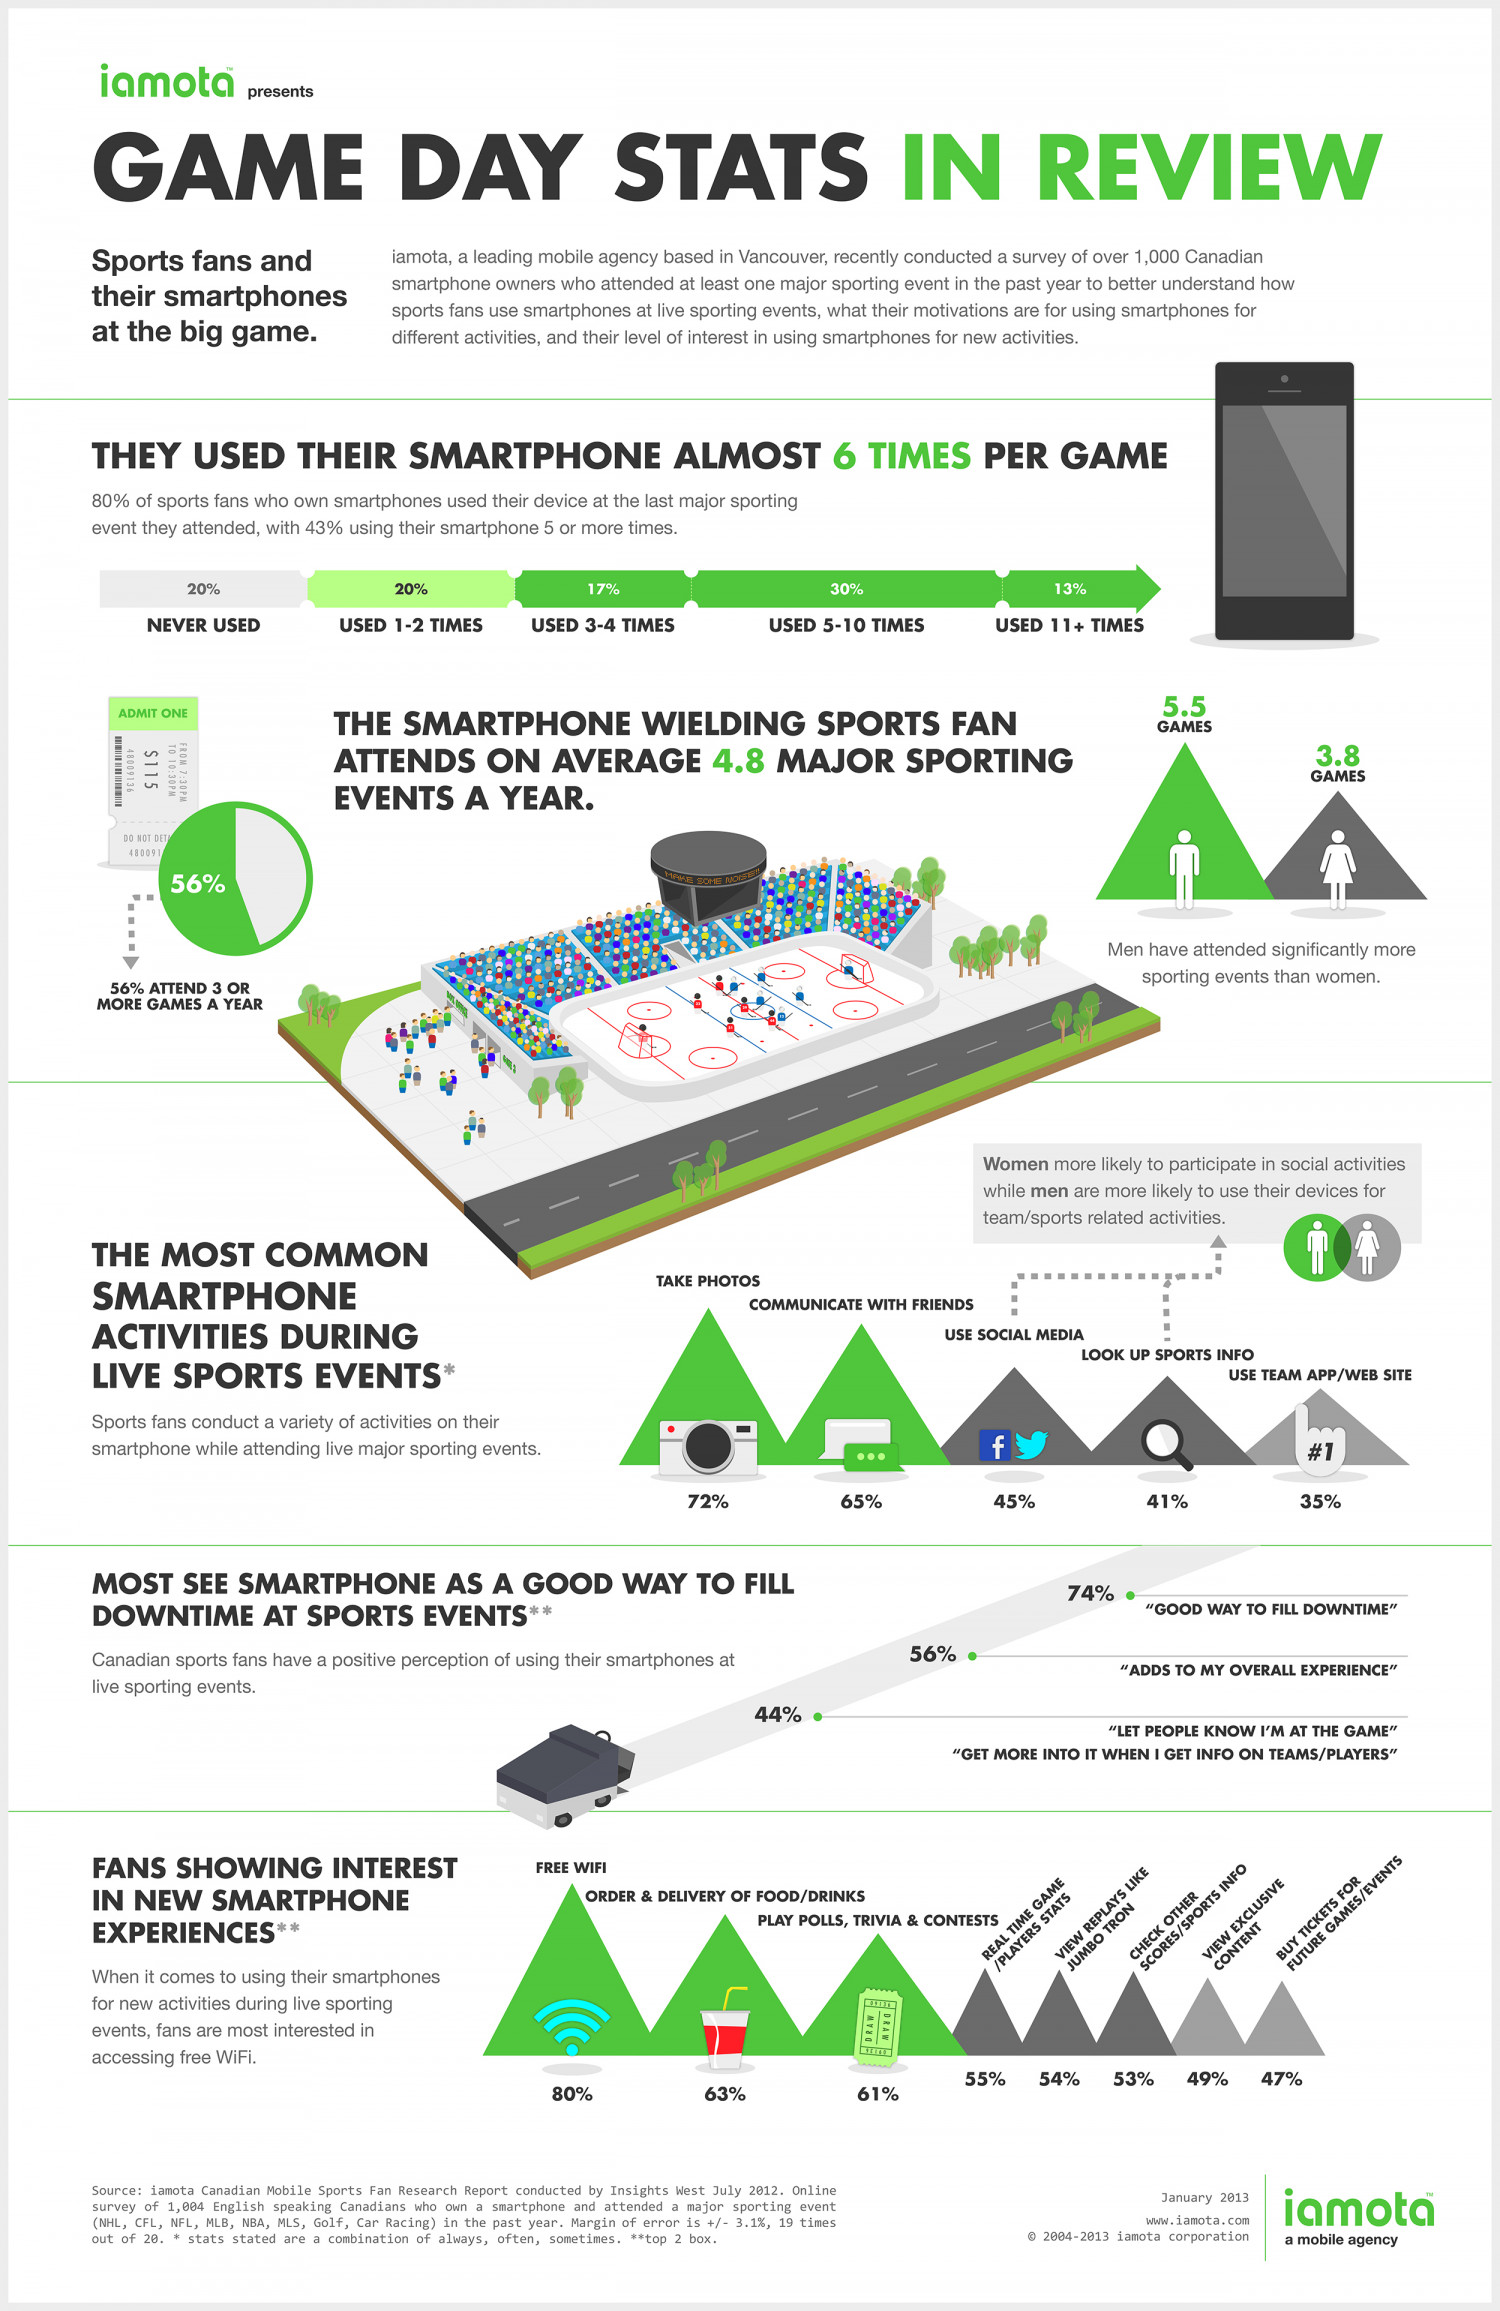 Fans at the game: craving food, beer and mobile experiences.  Infographic